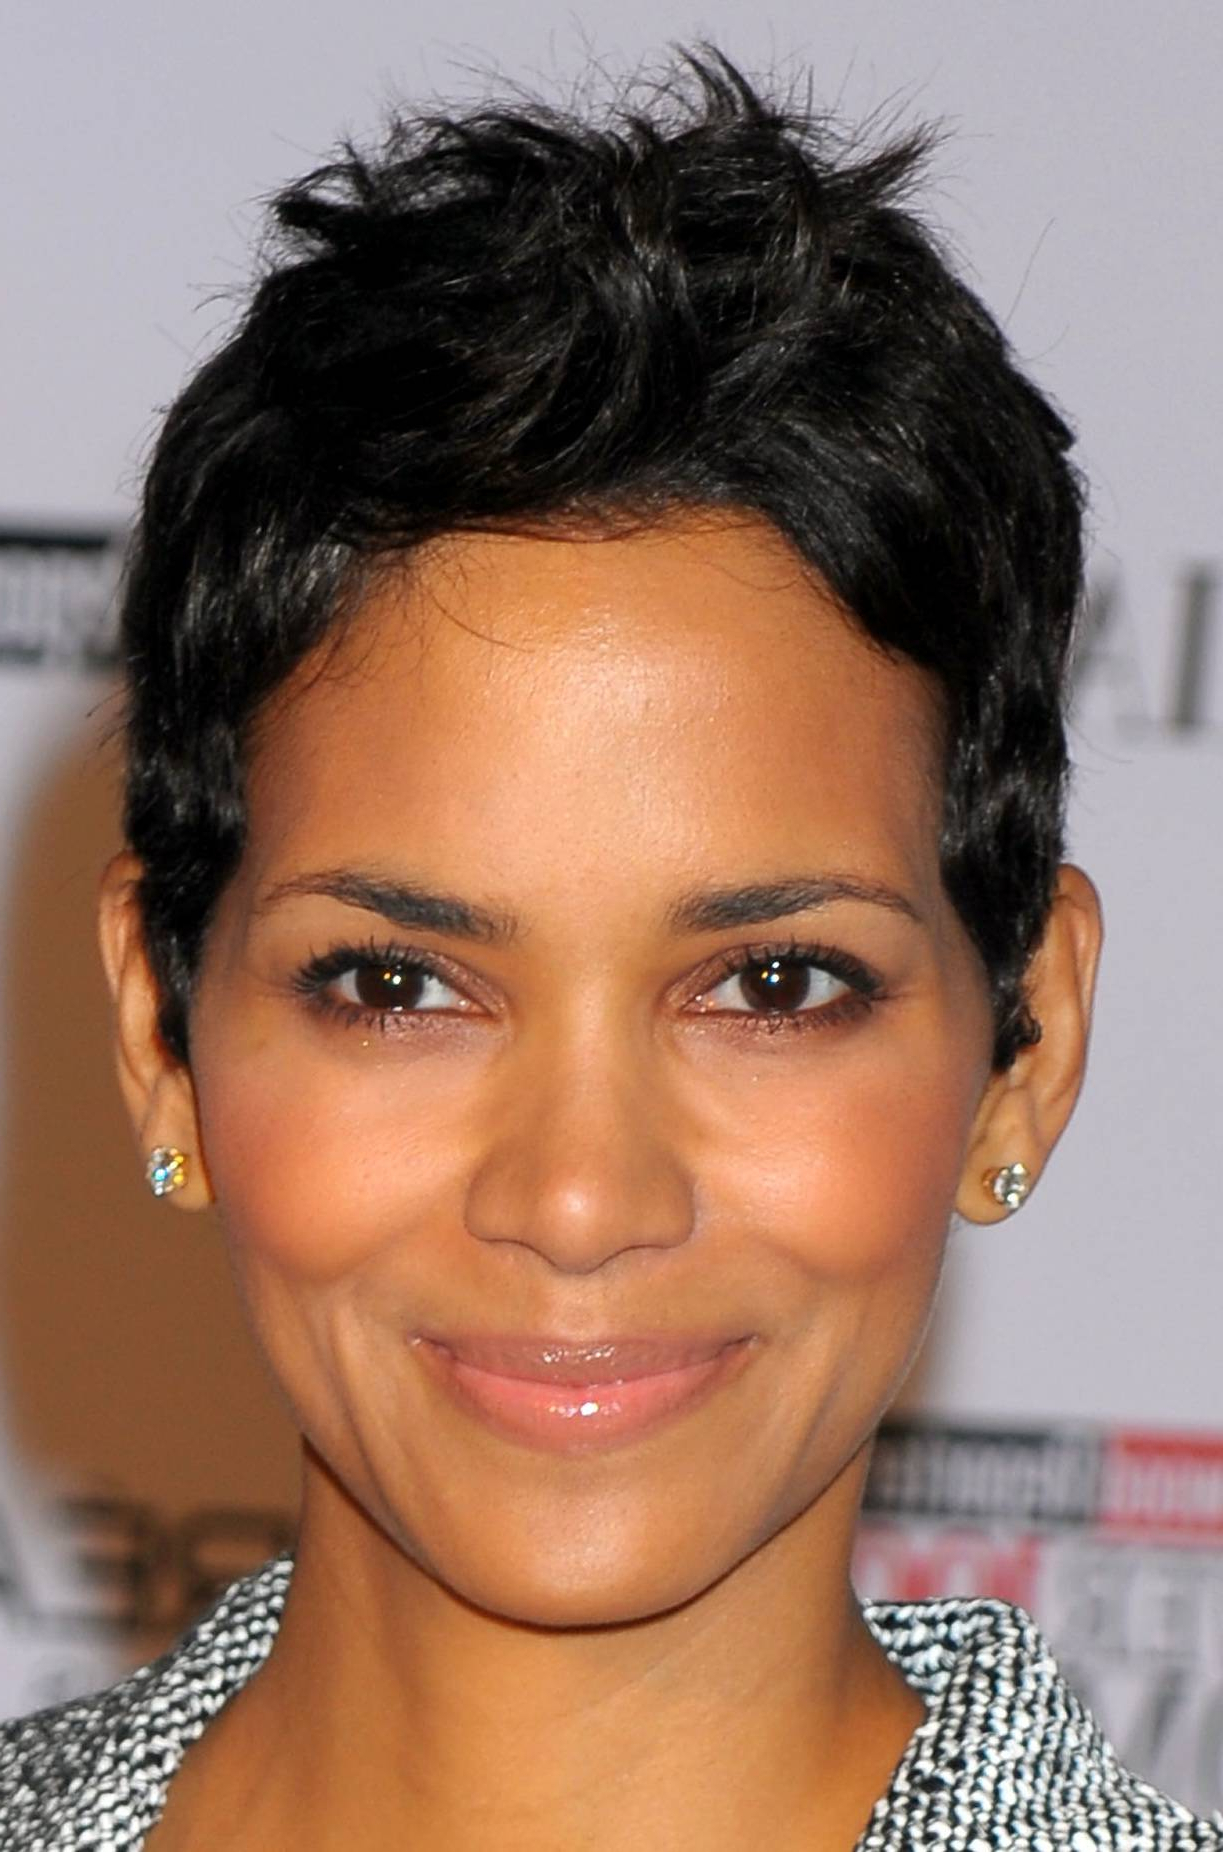 Short Hairstyles For Black Women With Round Faces – Hairstyle For Inside Short Haircuts For Round Faces Black Women (View 8 of 25)